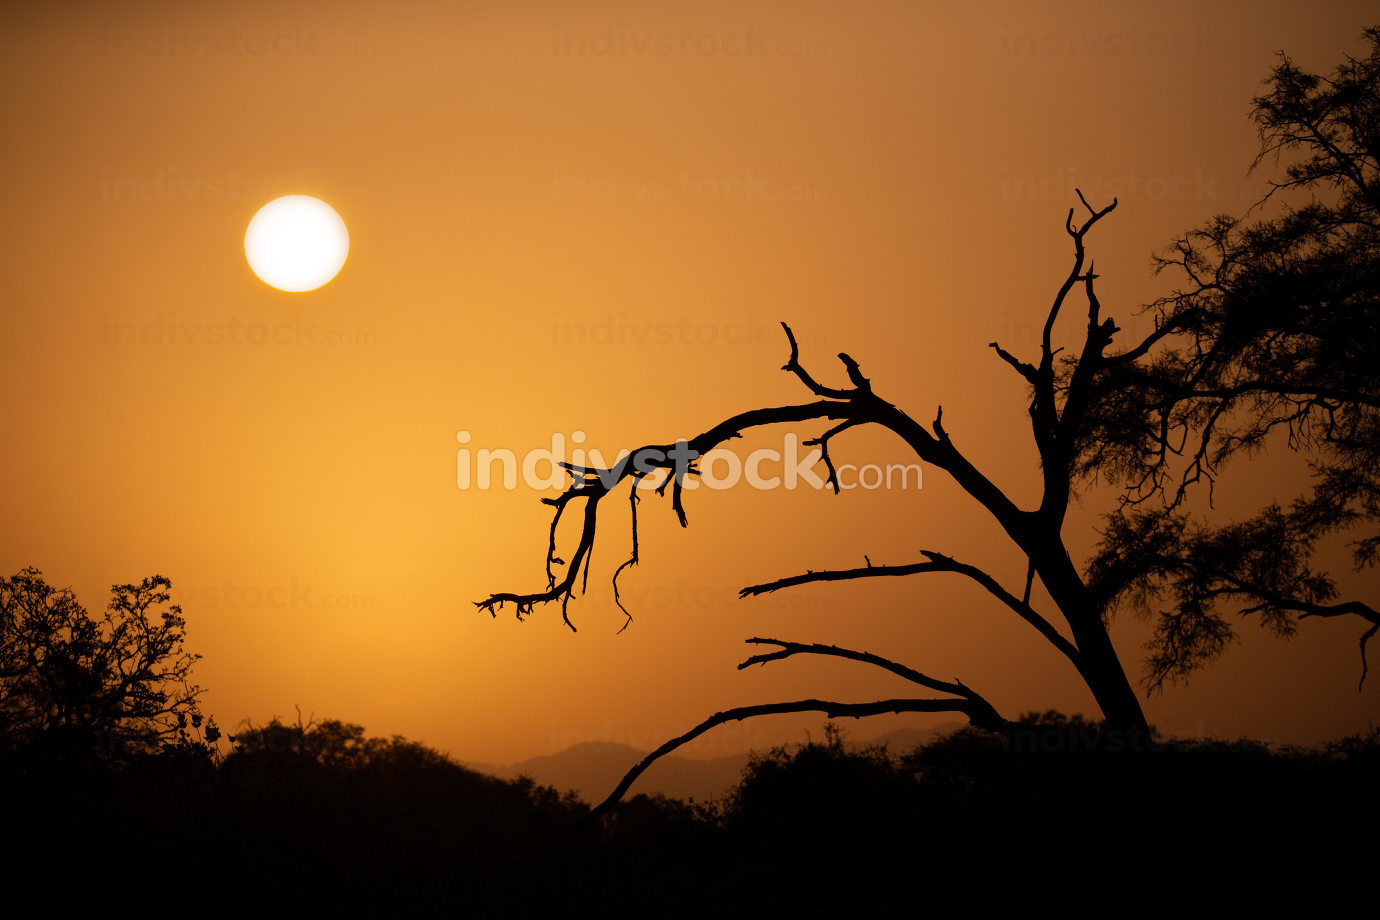 Sunrise over the savannah with trees in foreground